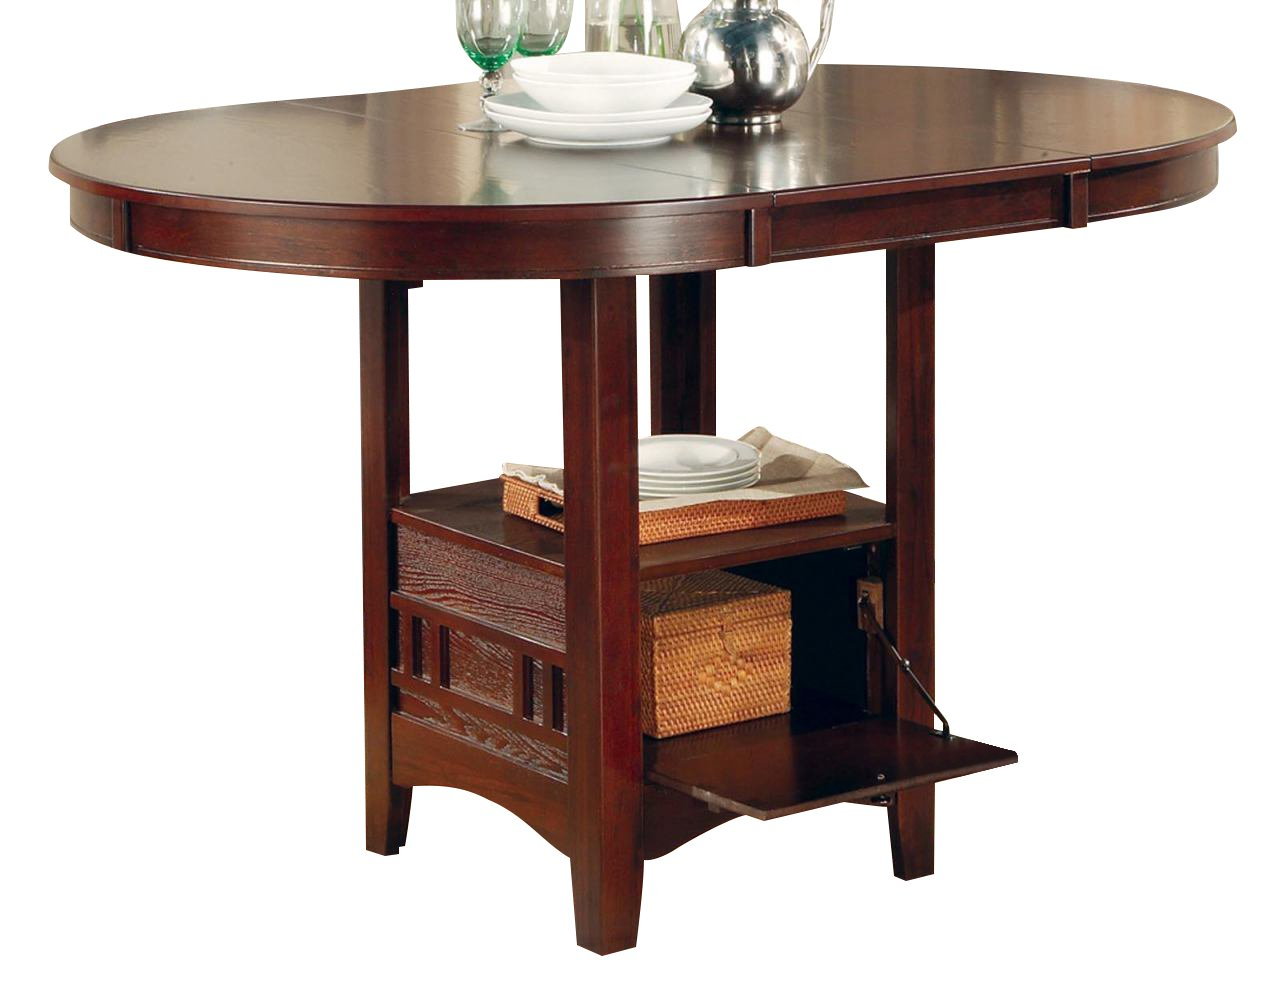 Coaster Home Furnishings Casual Counter Height Table, Dark Cherry